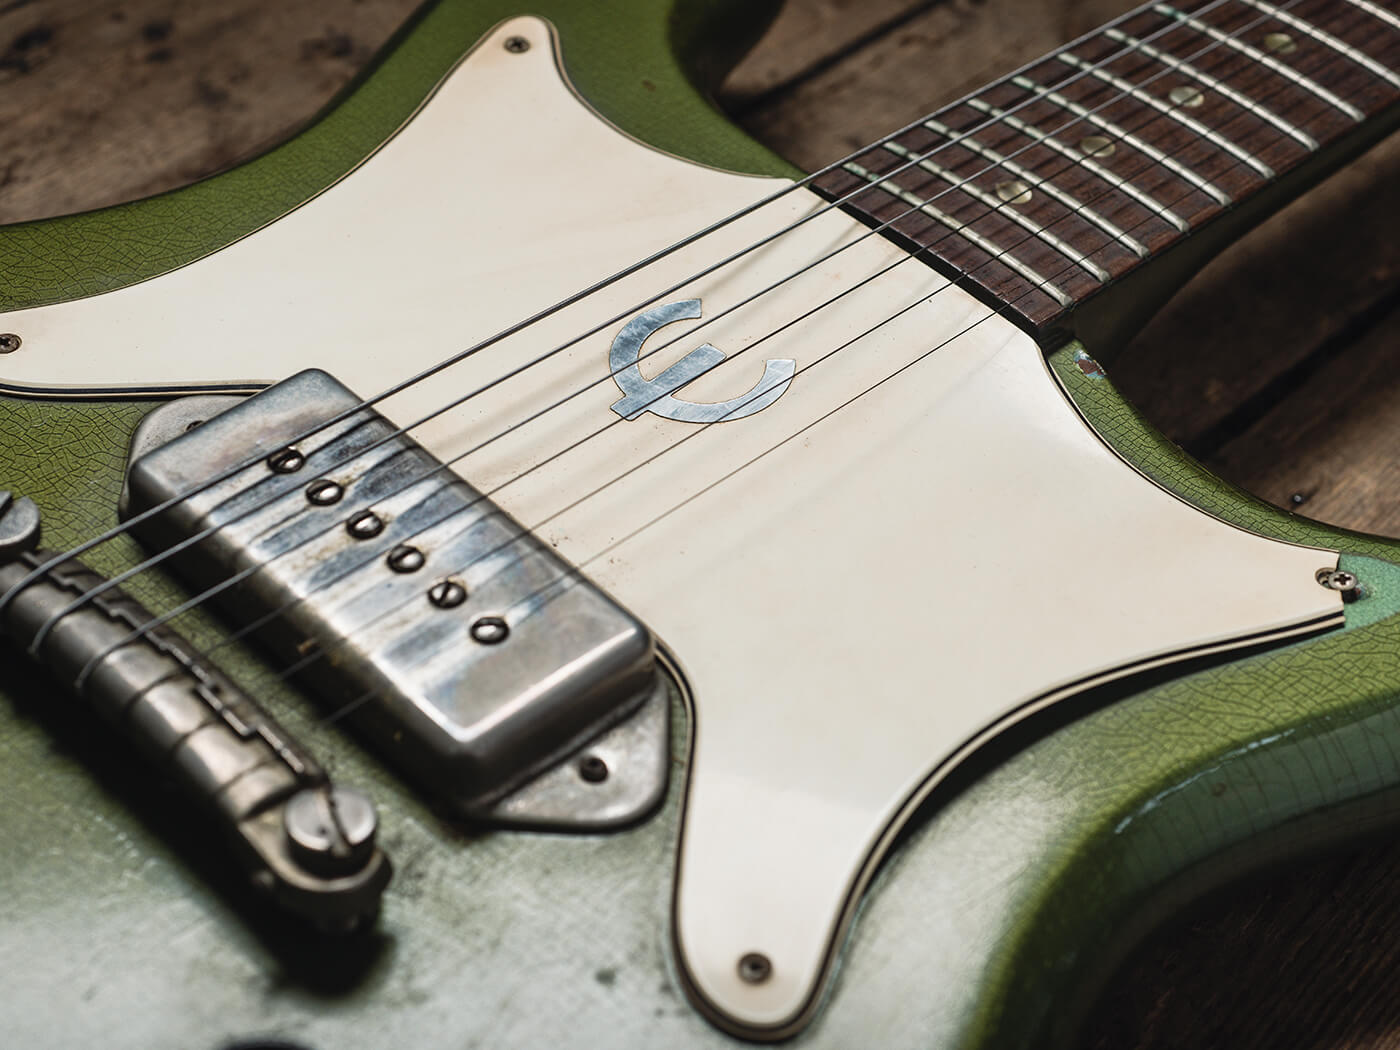 Rare Guitars: Rory Gallagher's 1963 Epiphone Coronet